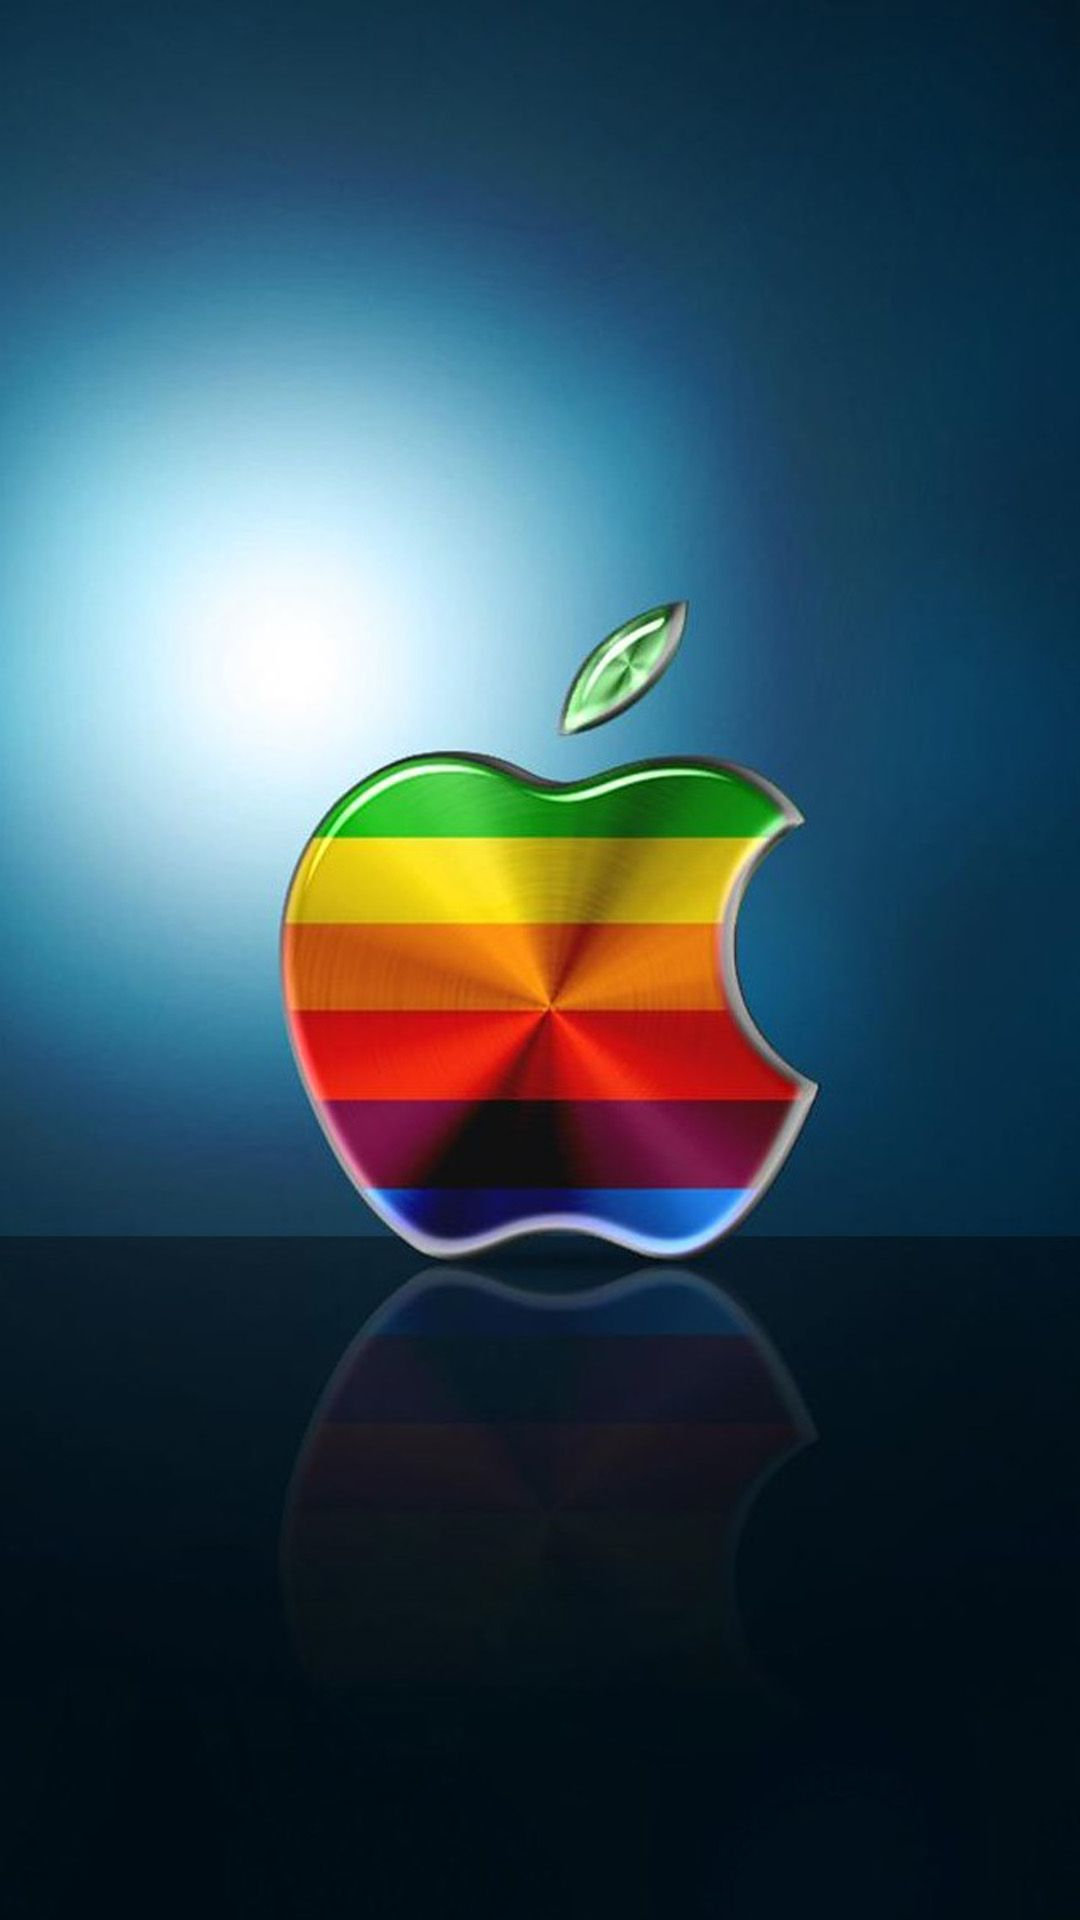 Wallpaper download apple - Apple Logo Images Hd Wallpapers Free Download